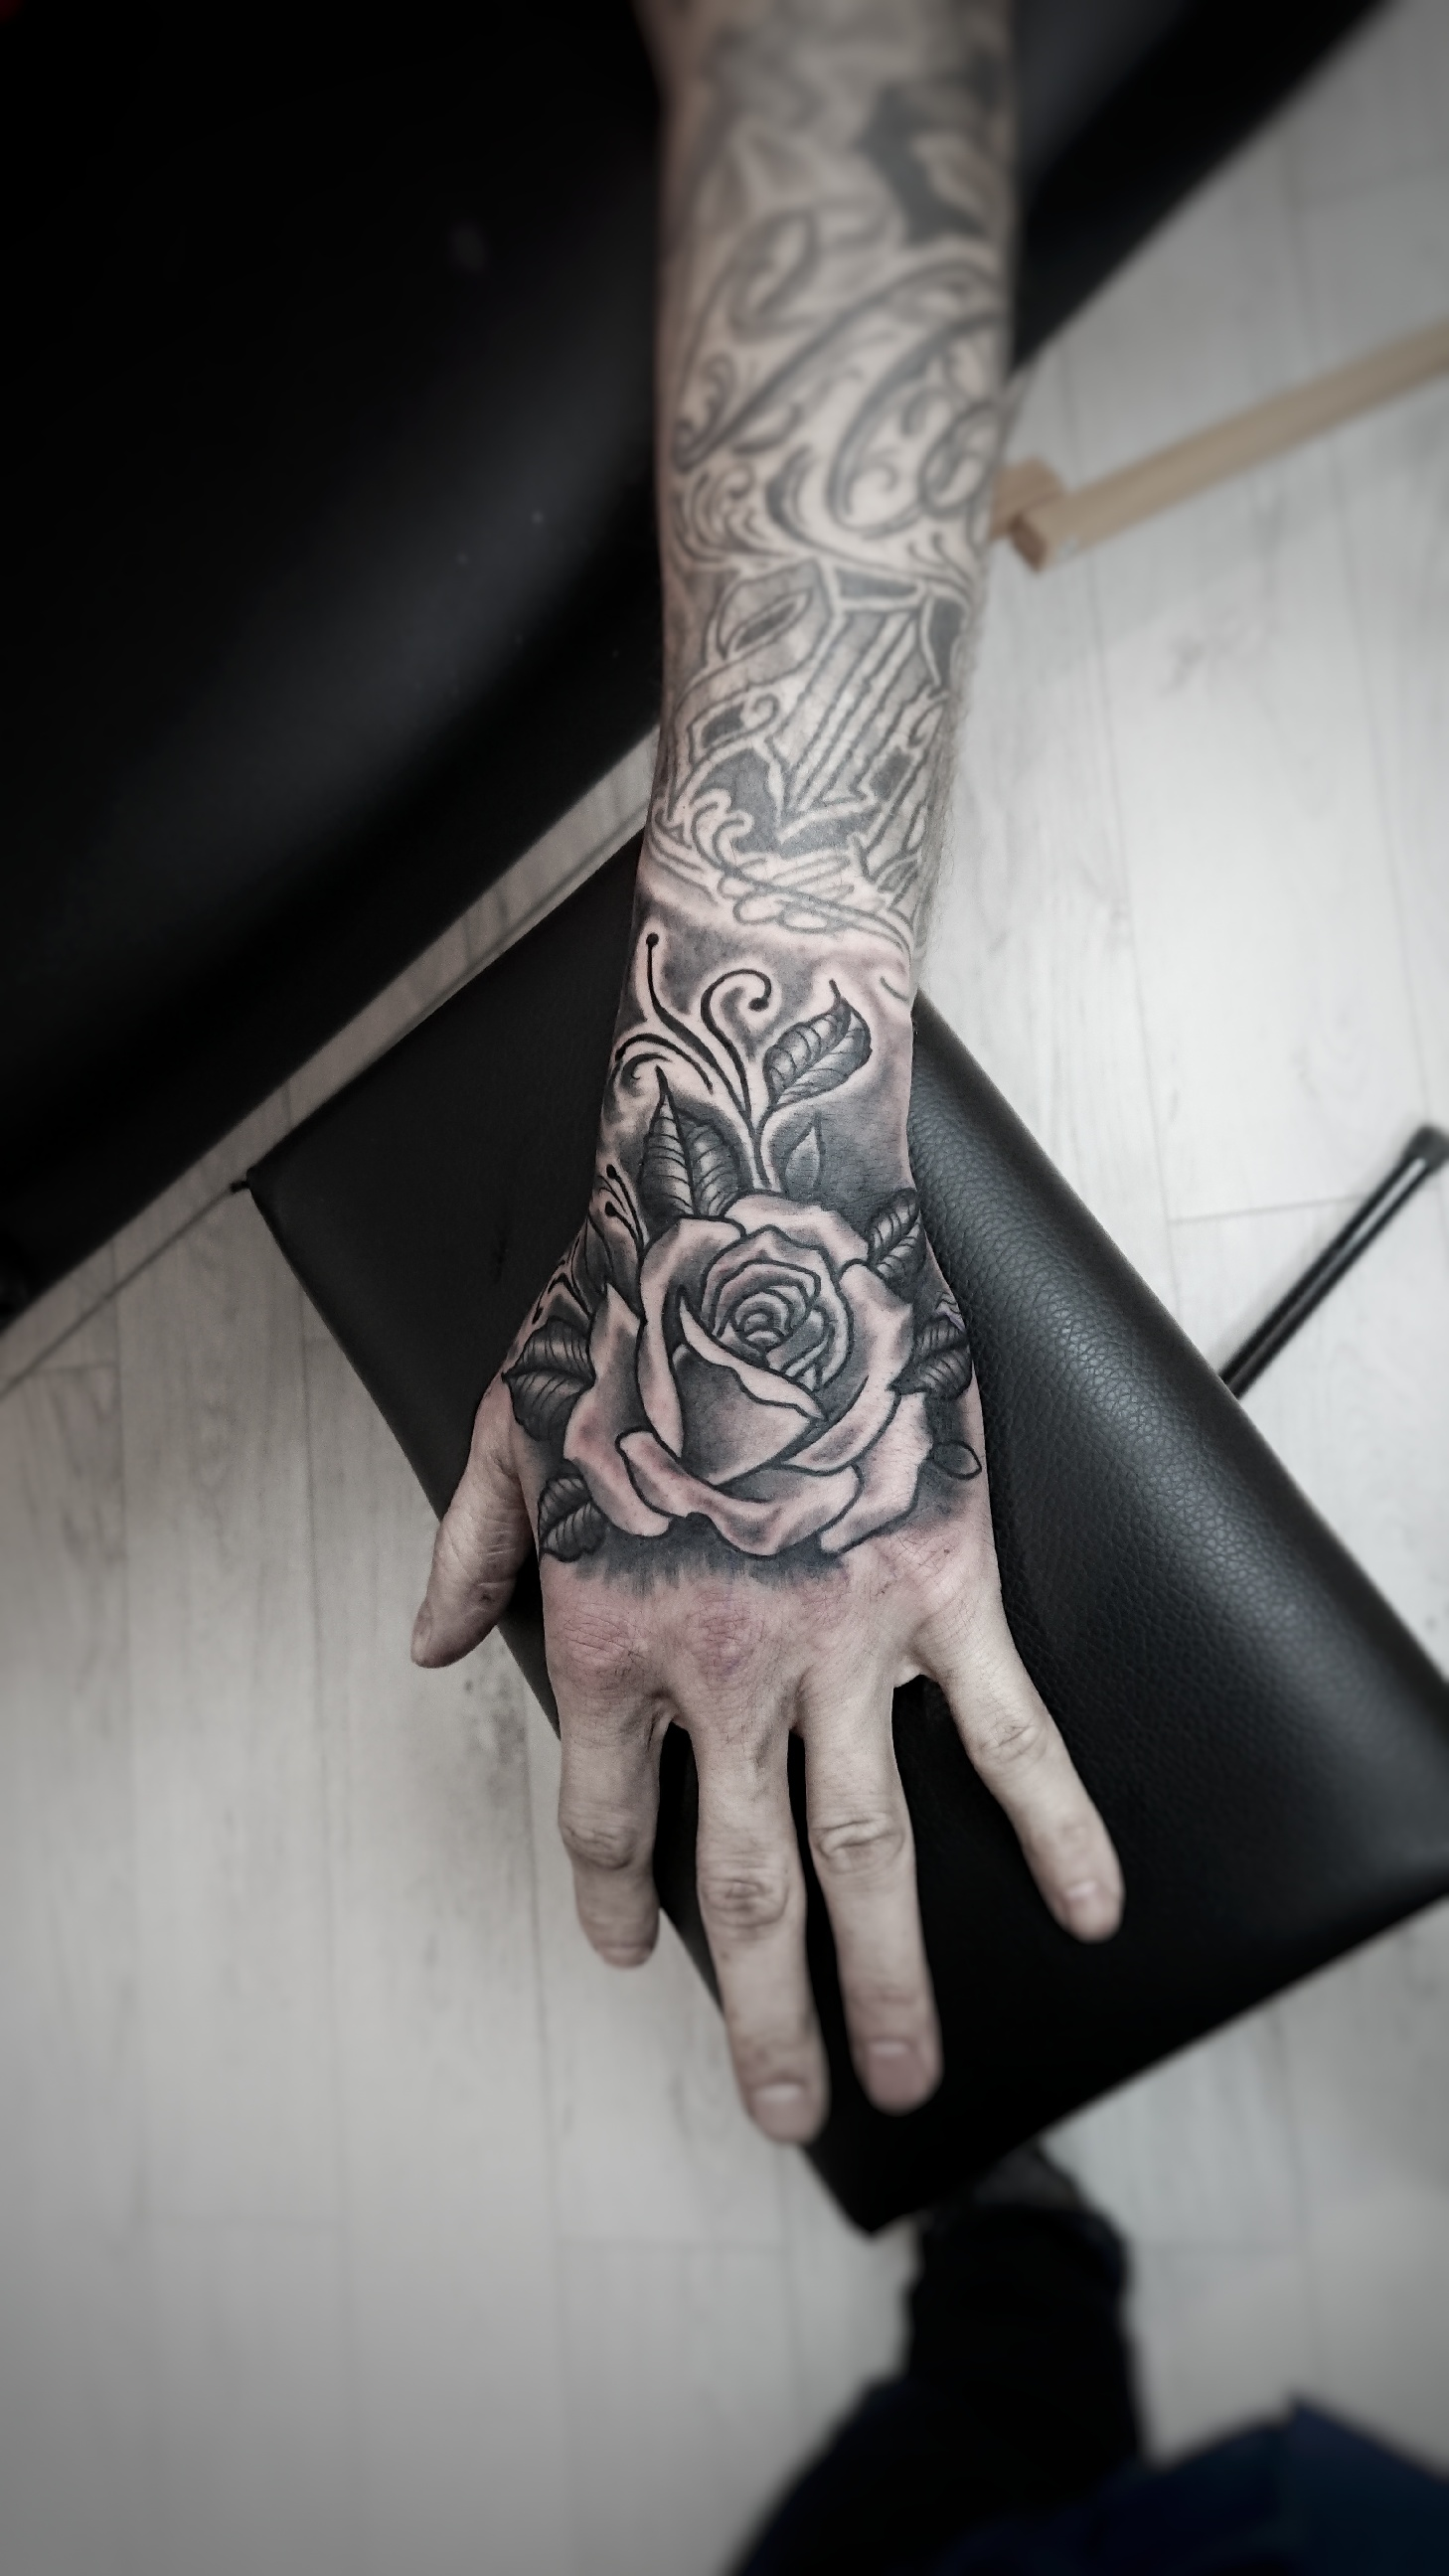 TATTOO BY MARCO